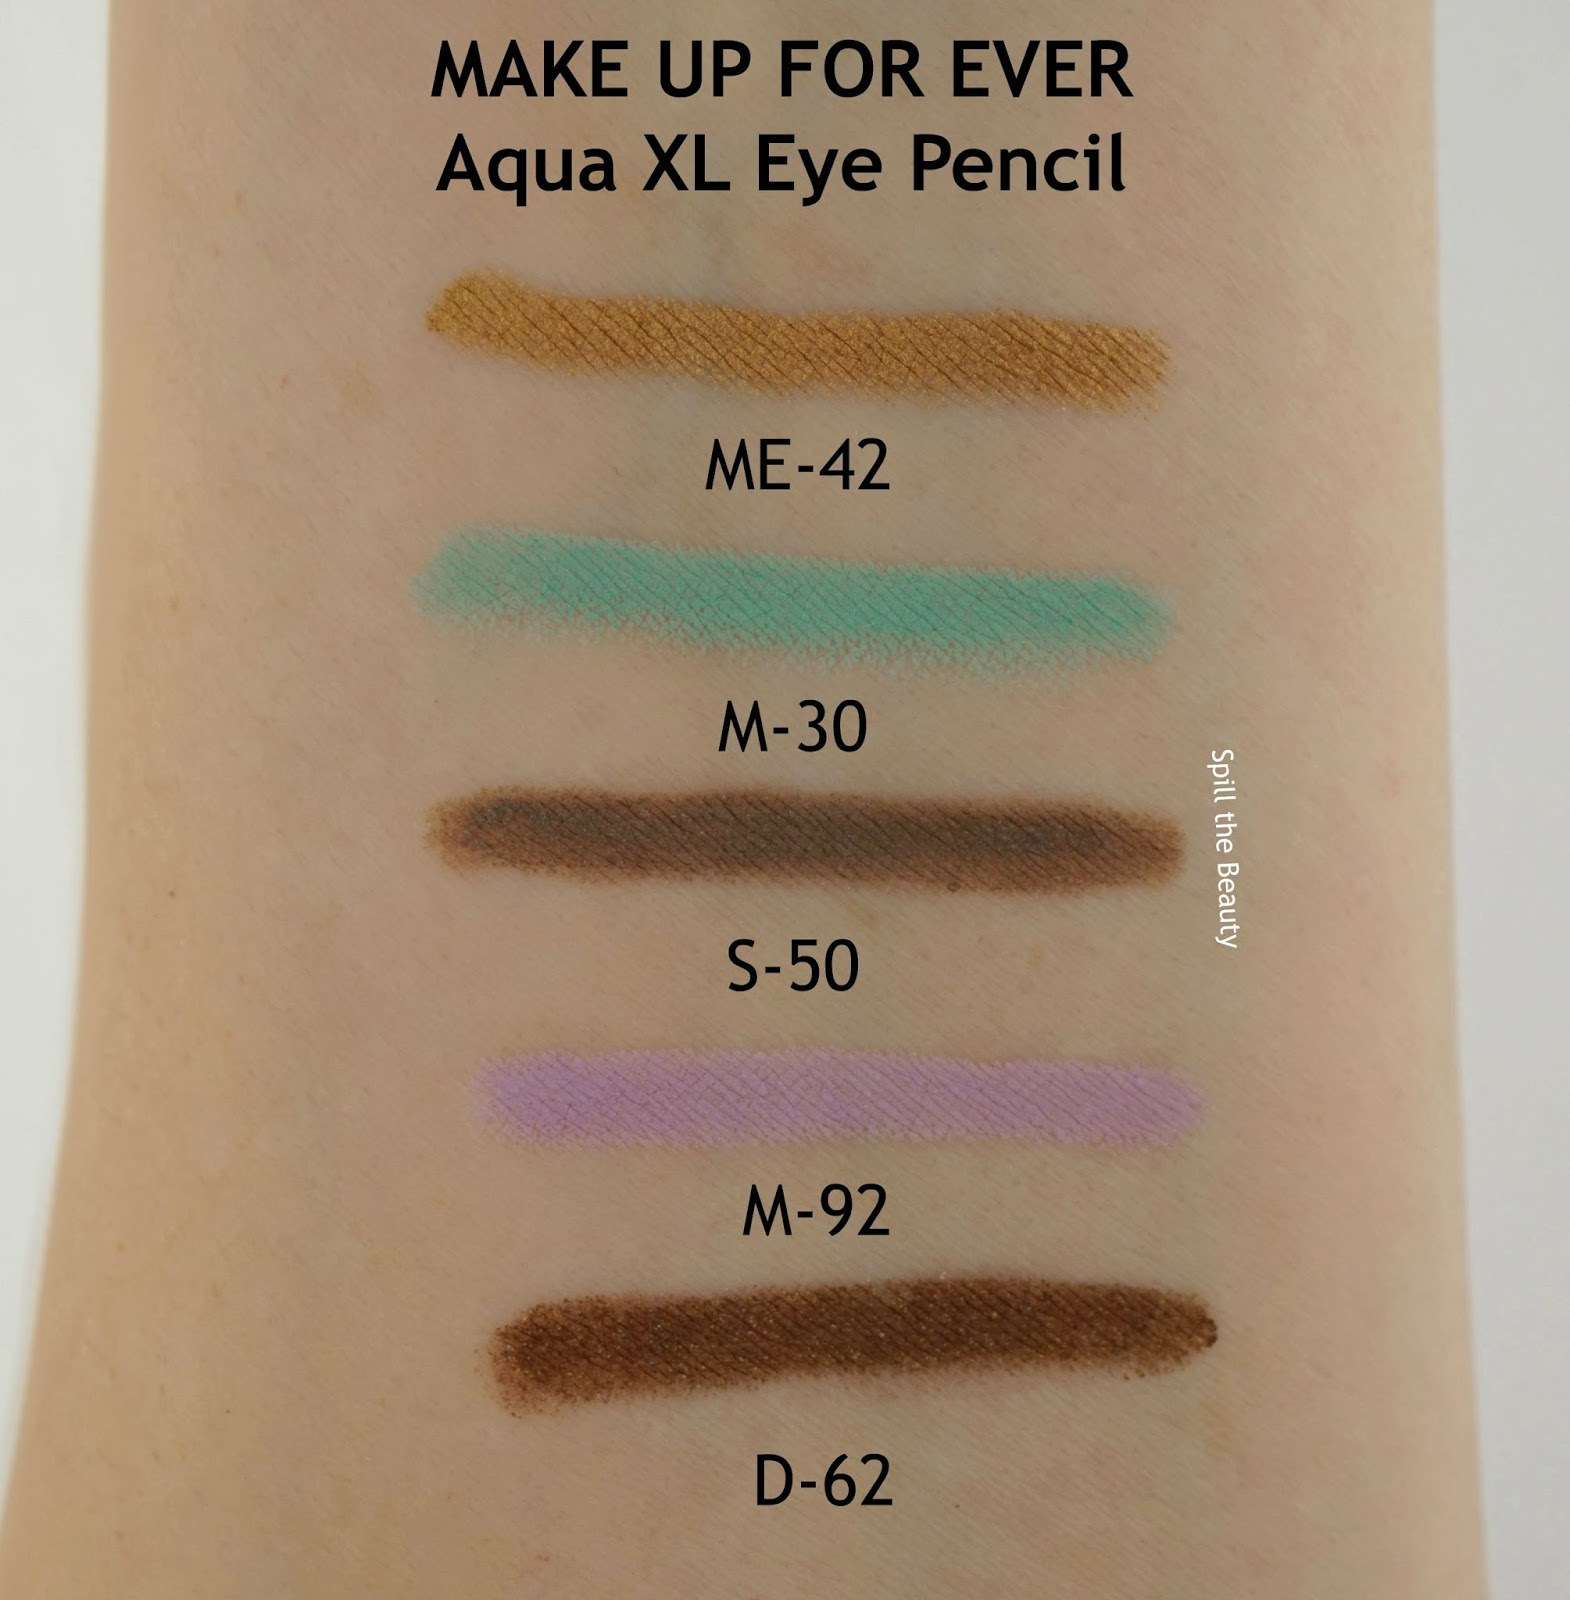 make up for ever aqua xl eyeliner review arm swatches me-42 m-30 s-50 m-92 d-62